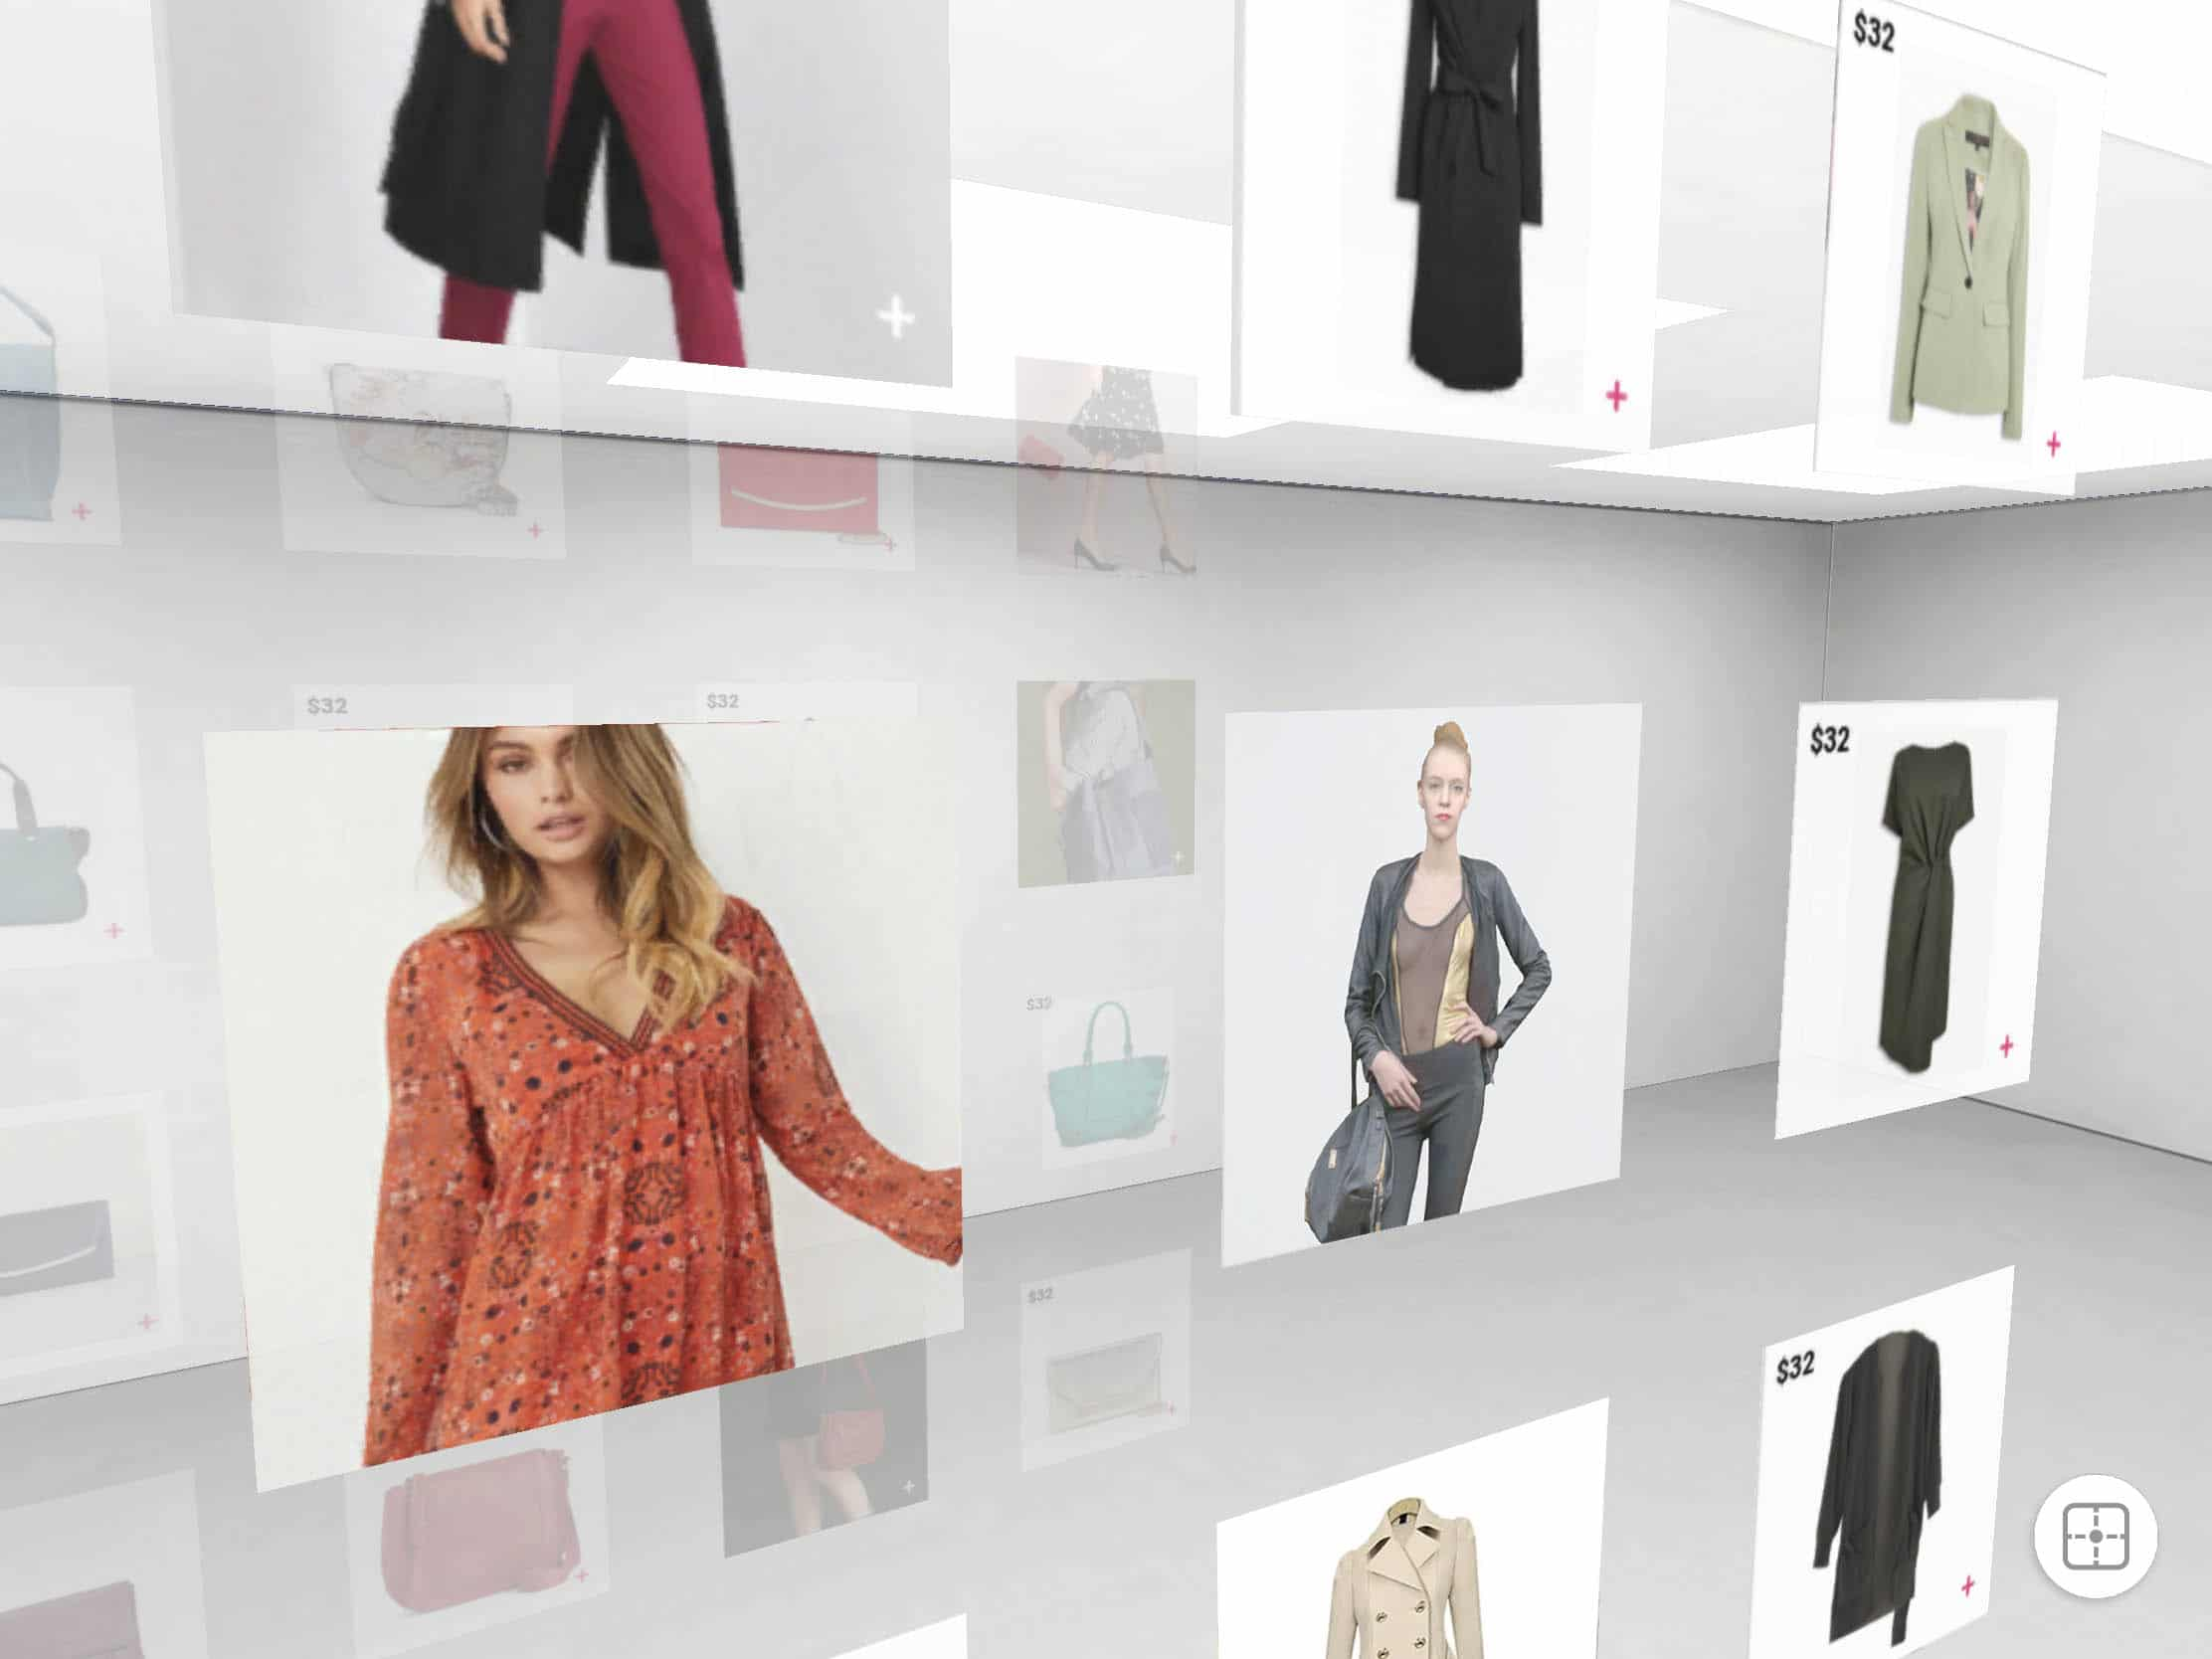 digital showcase solutions for apparel retailers